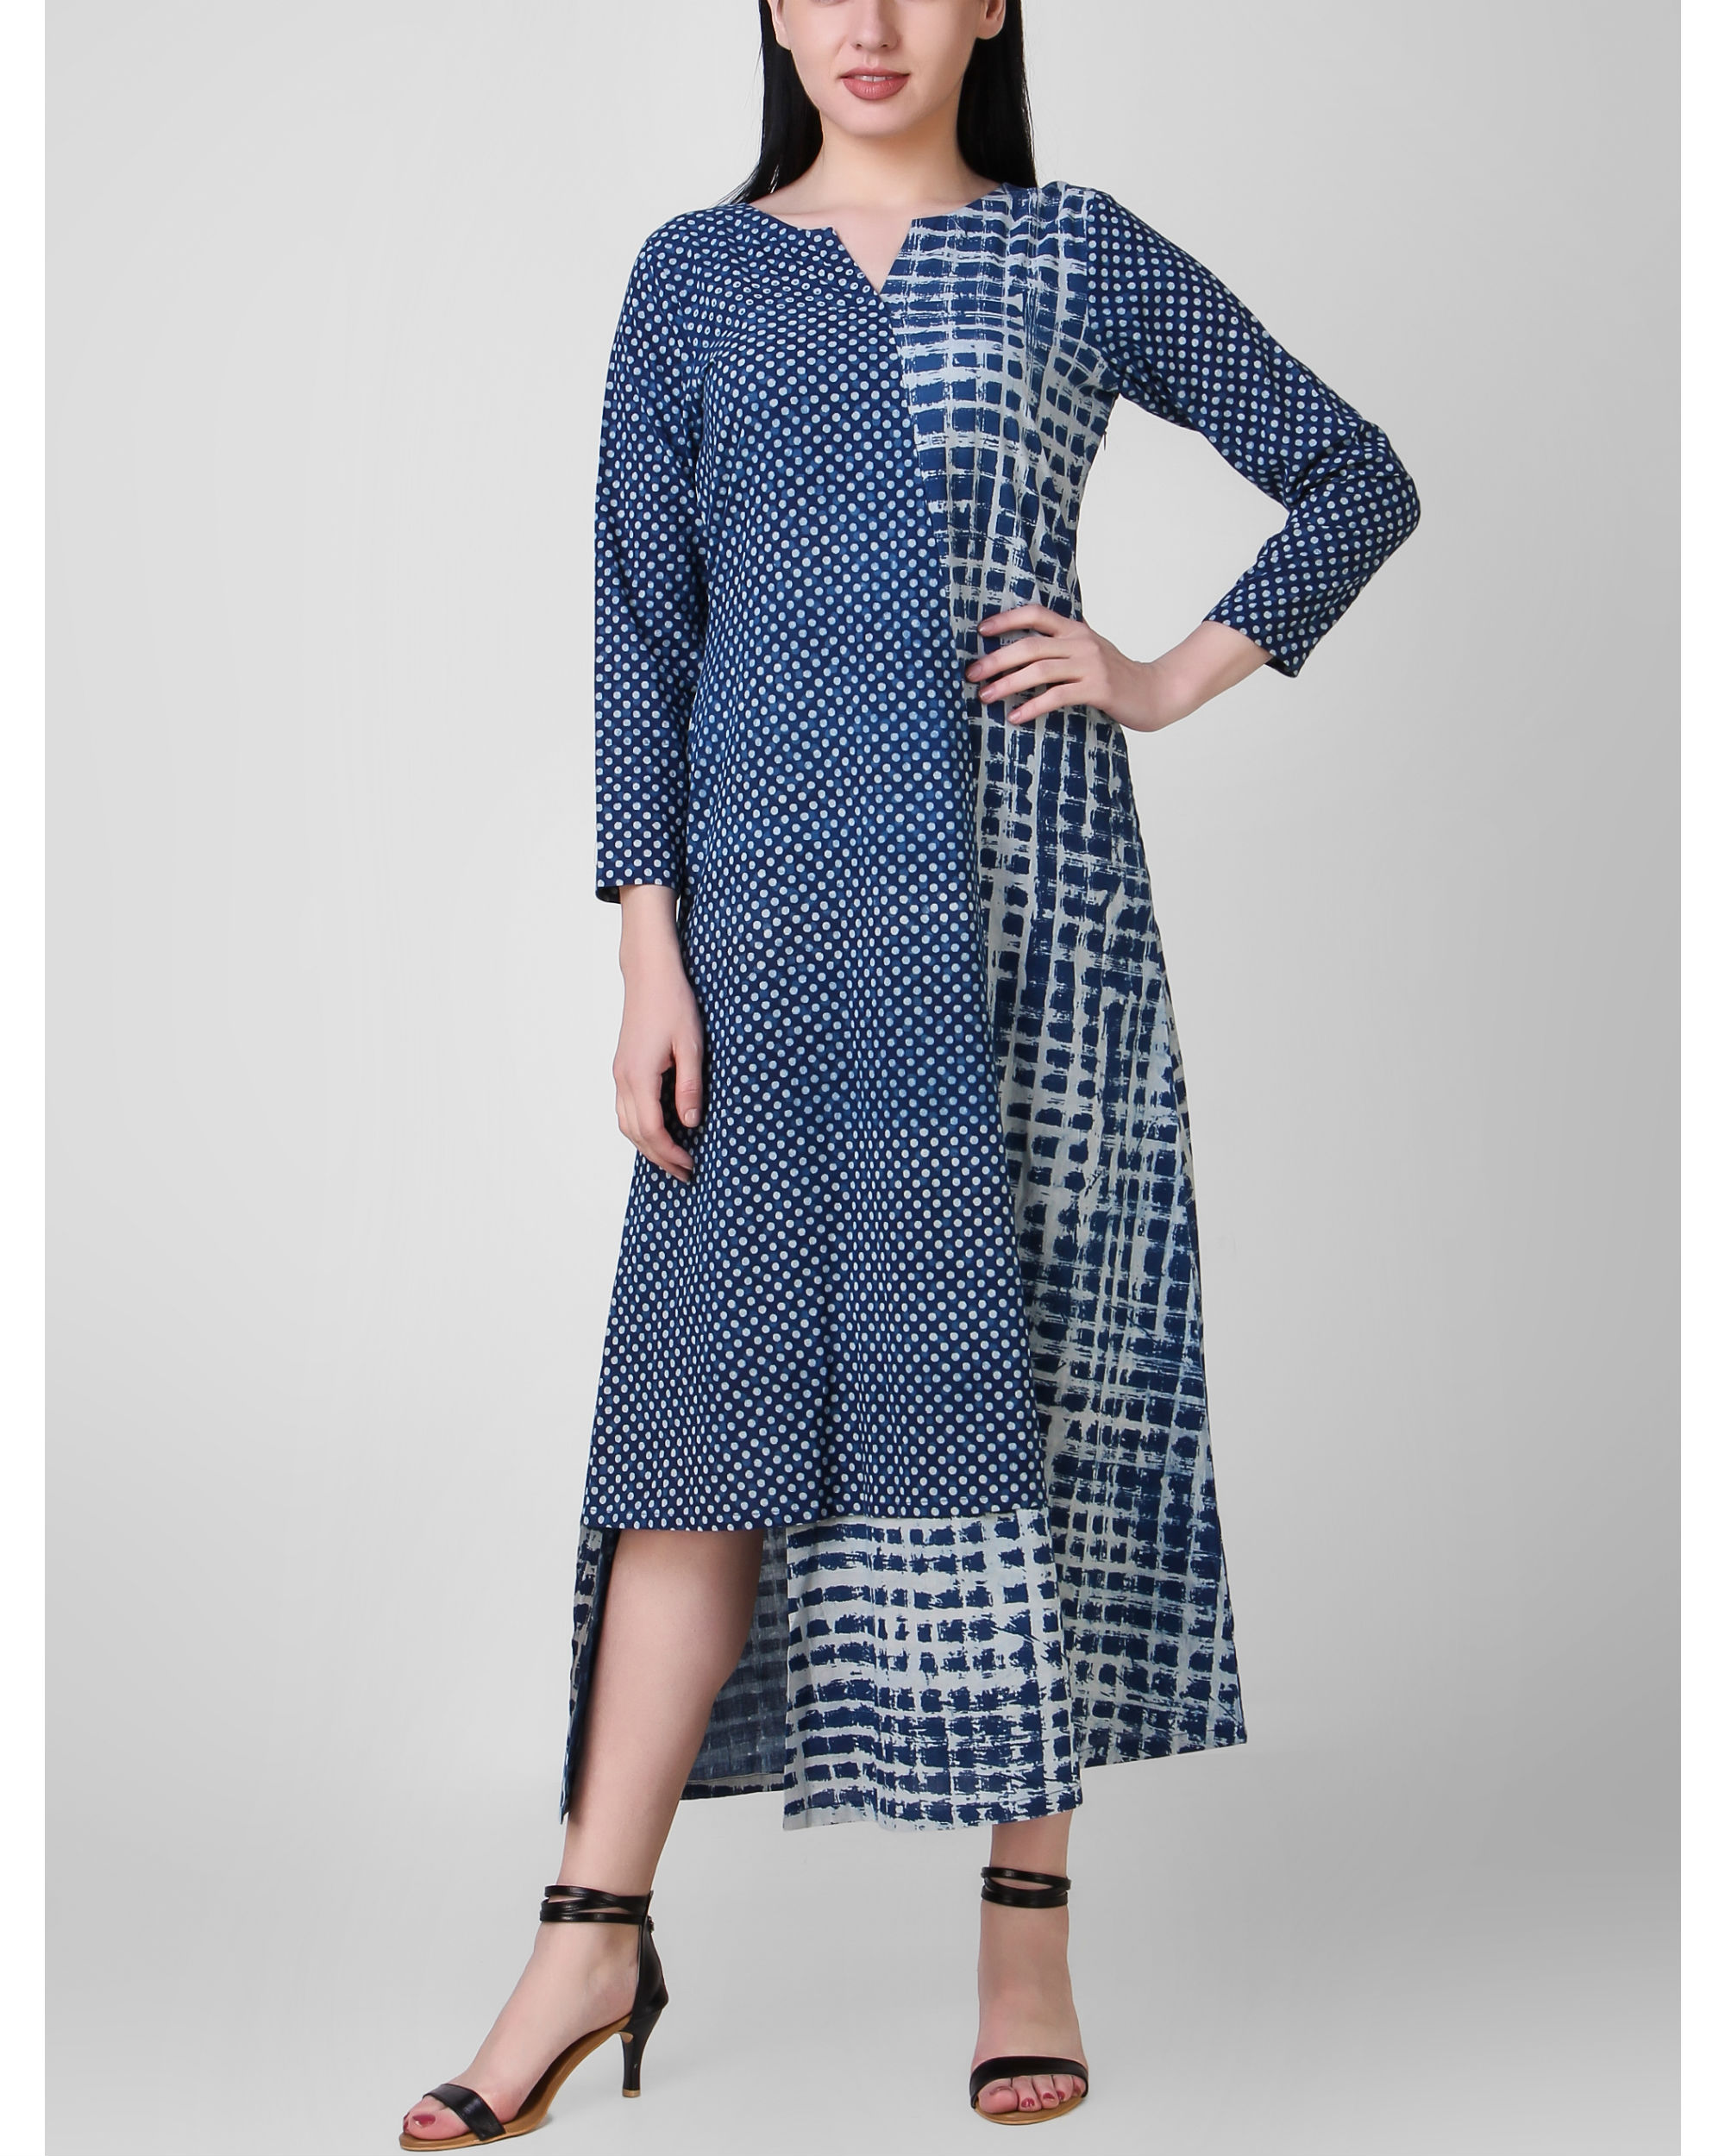 Indigo dabu dress